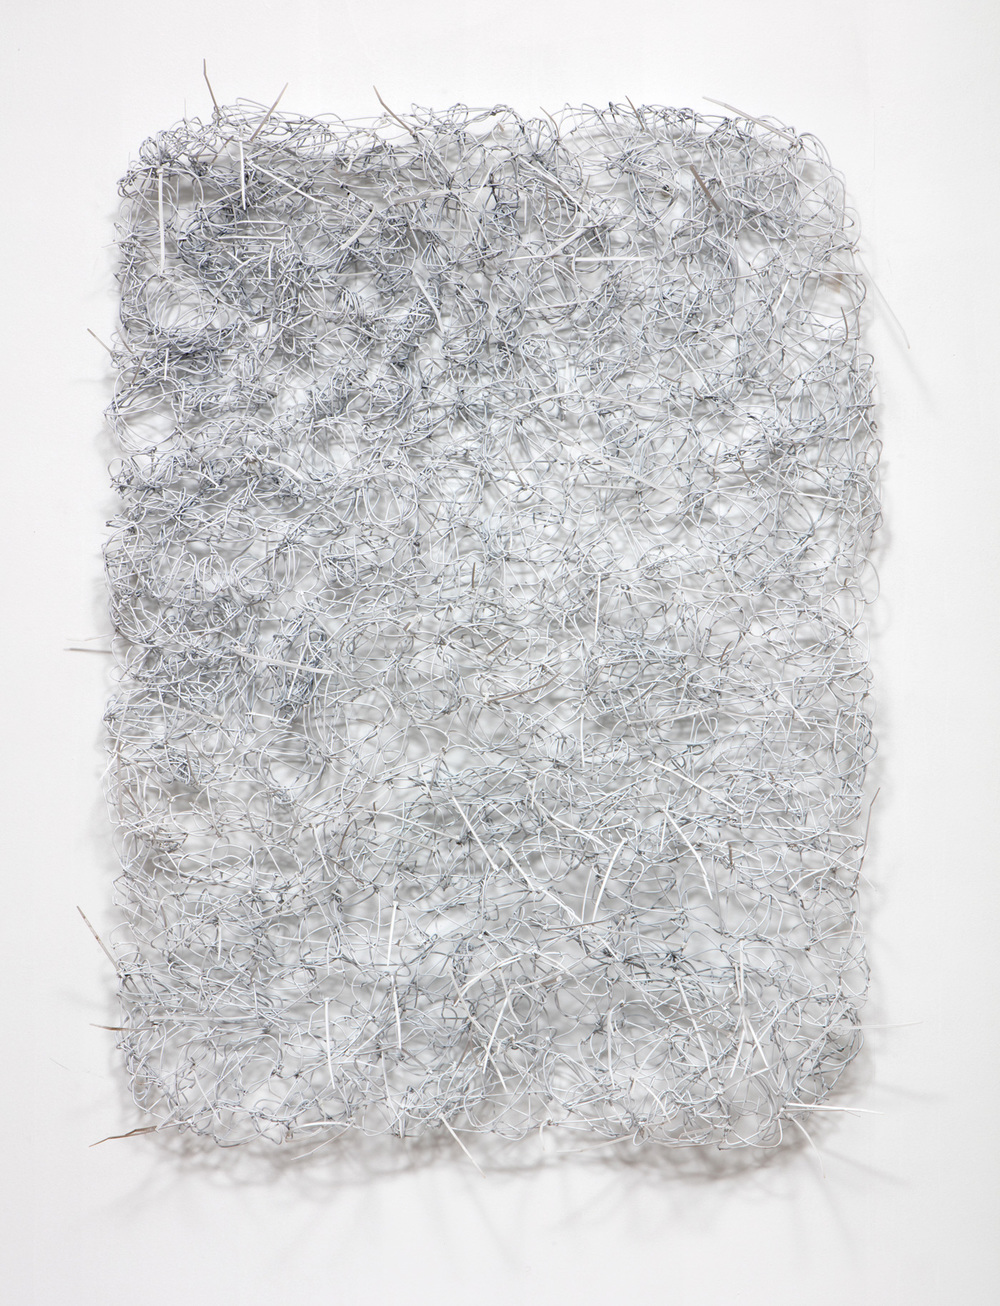 SLATE: Wire Hanger Construction No. 4  , 2015 Spray paint on wire hangers and zip ties 48 x 36 inches